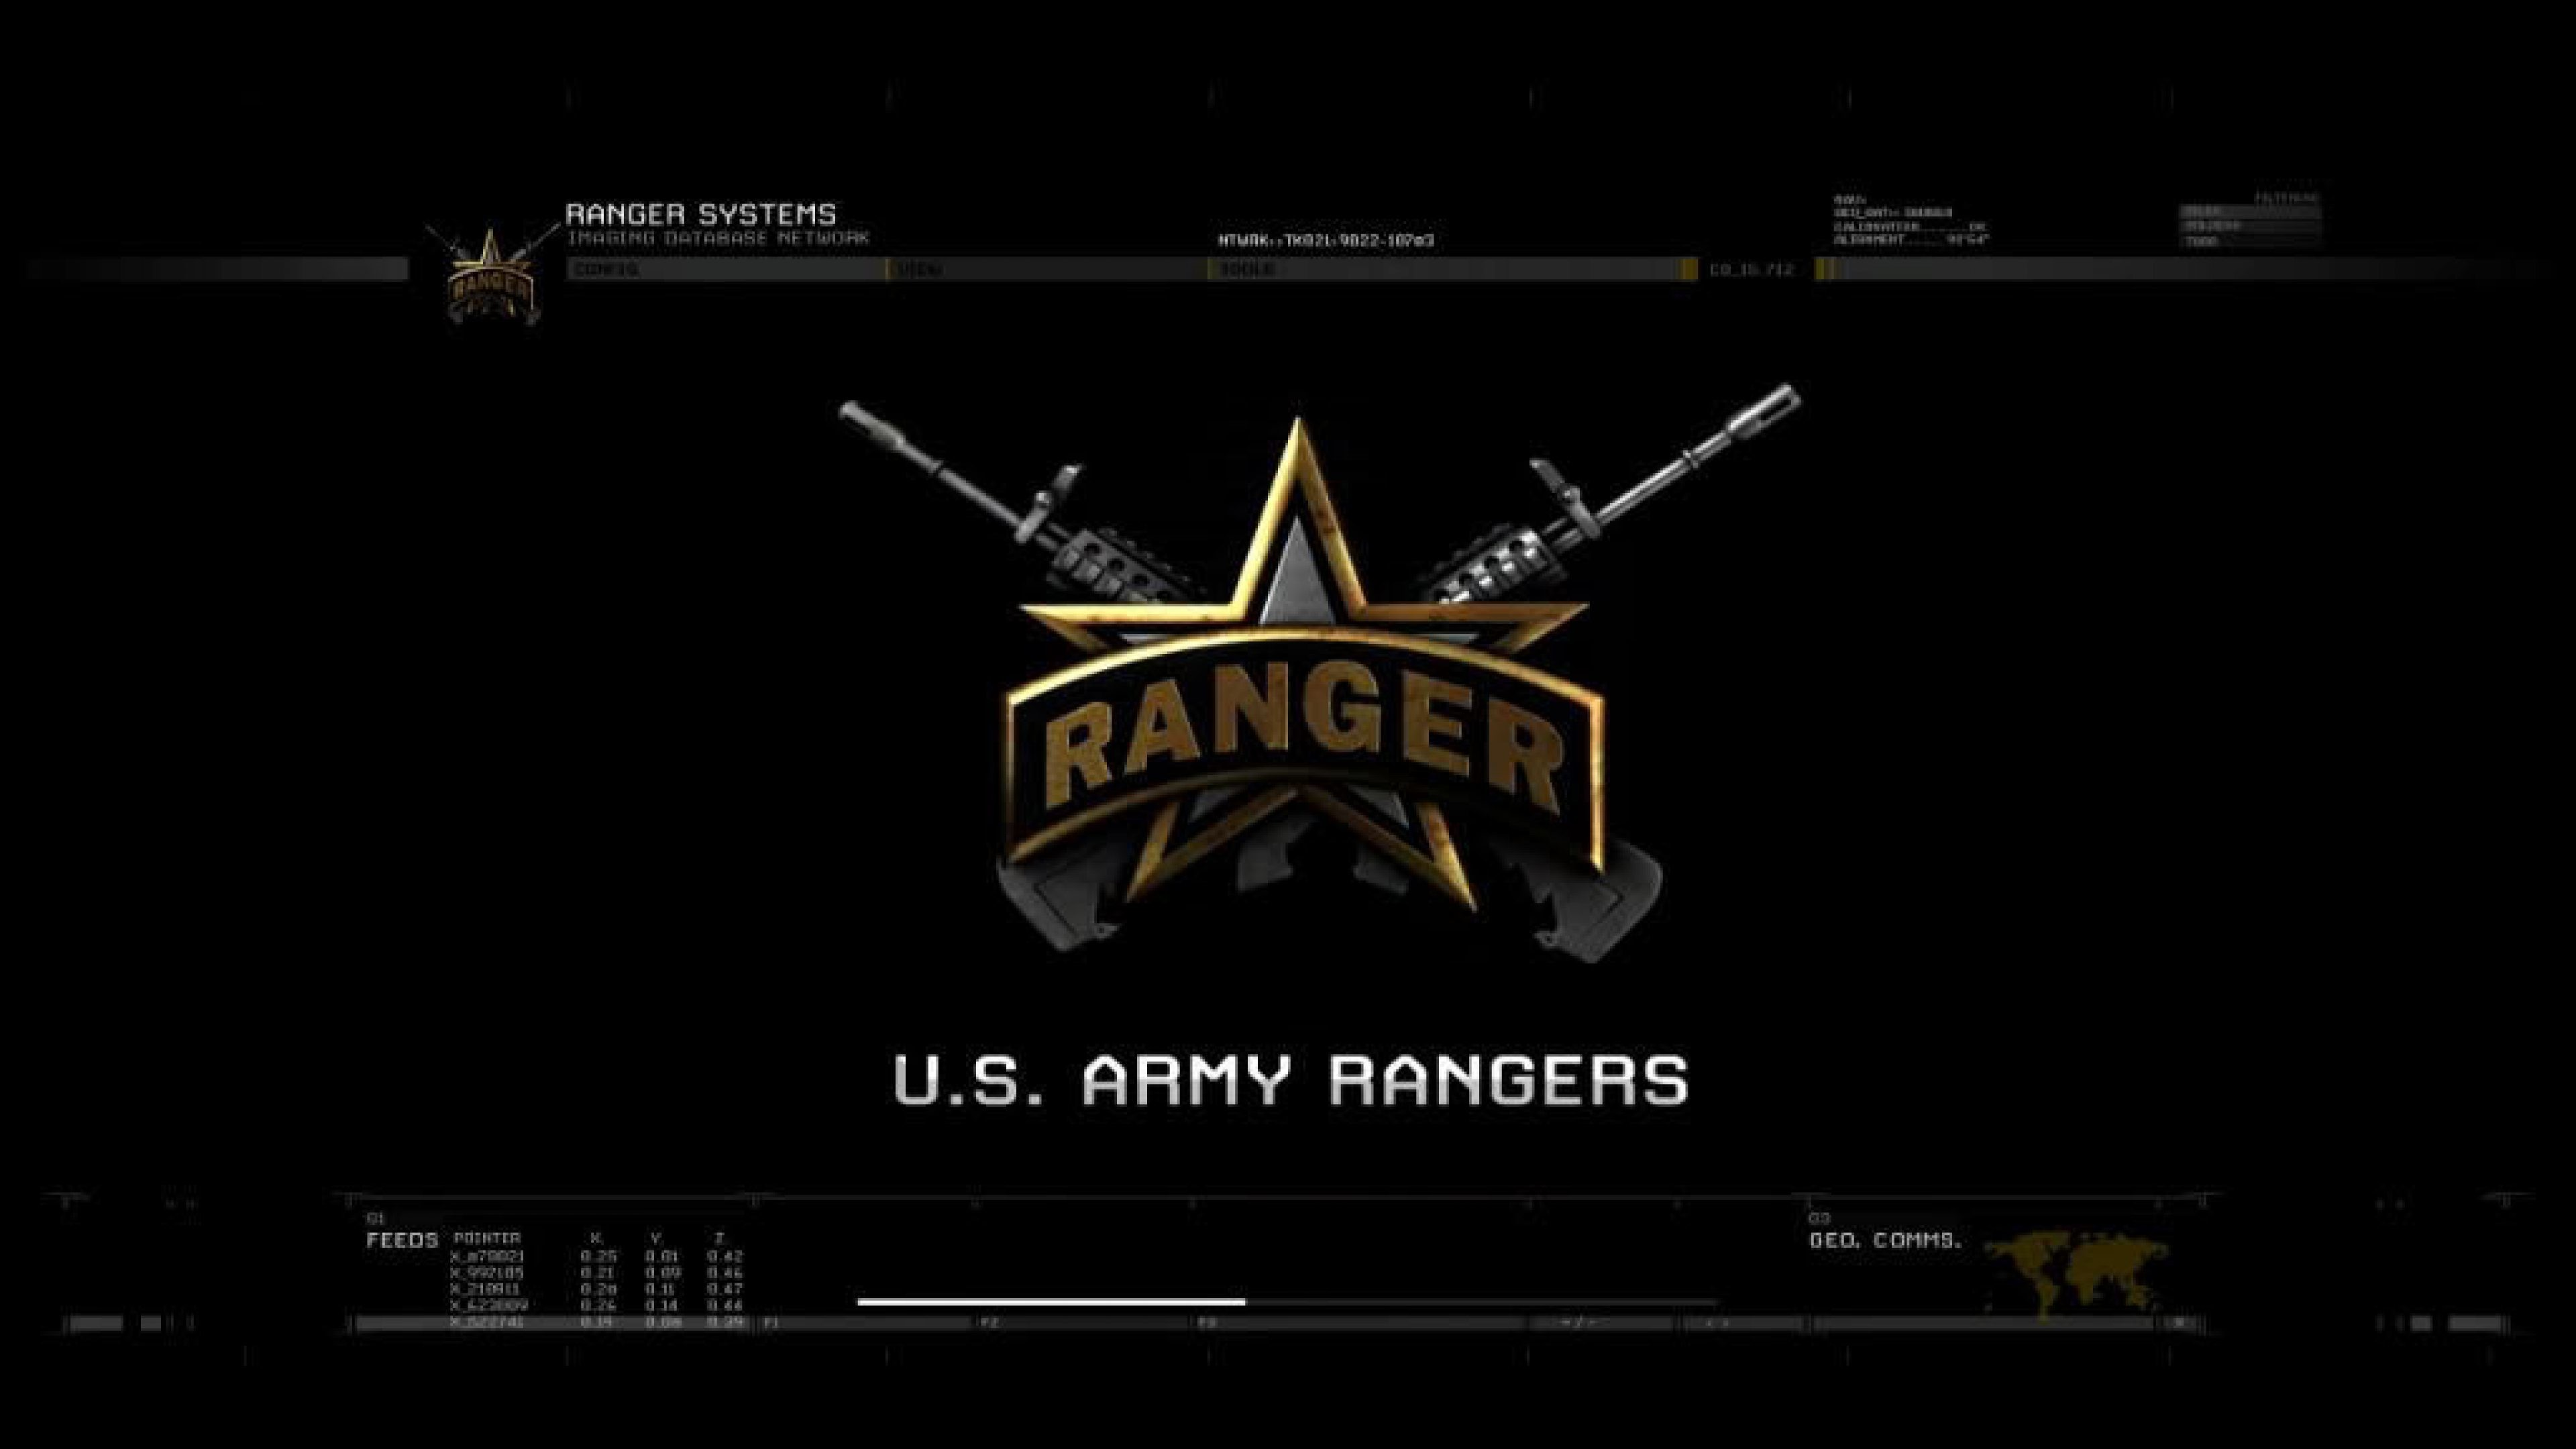 Army Rangers Chinook HD Wallpaper 6624